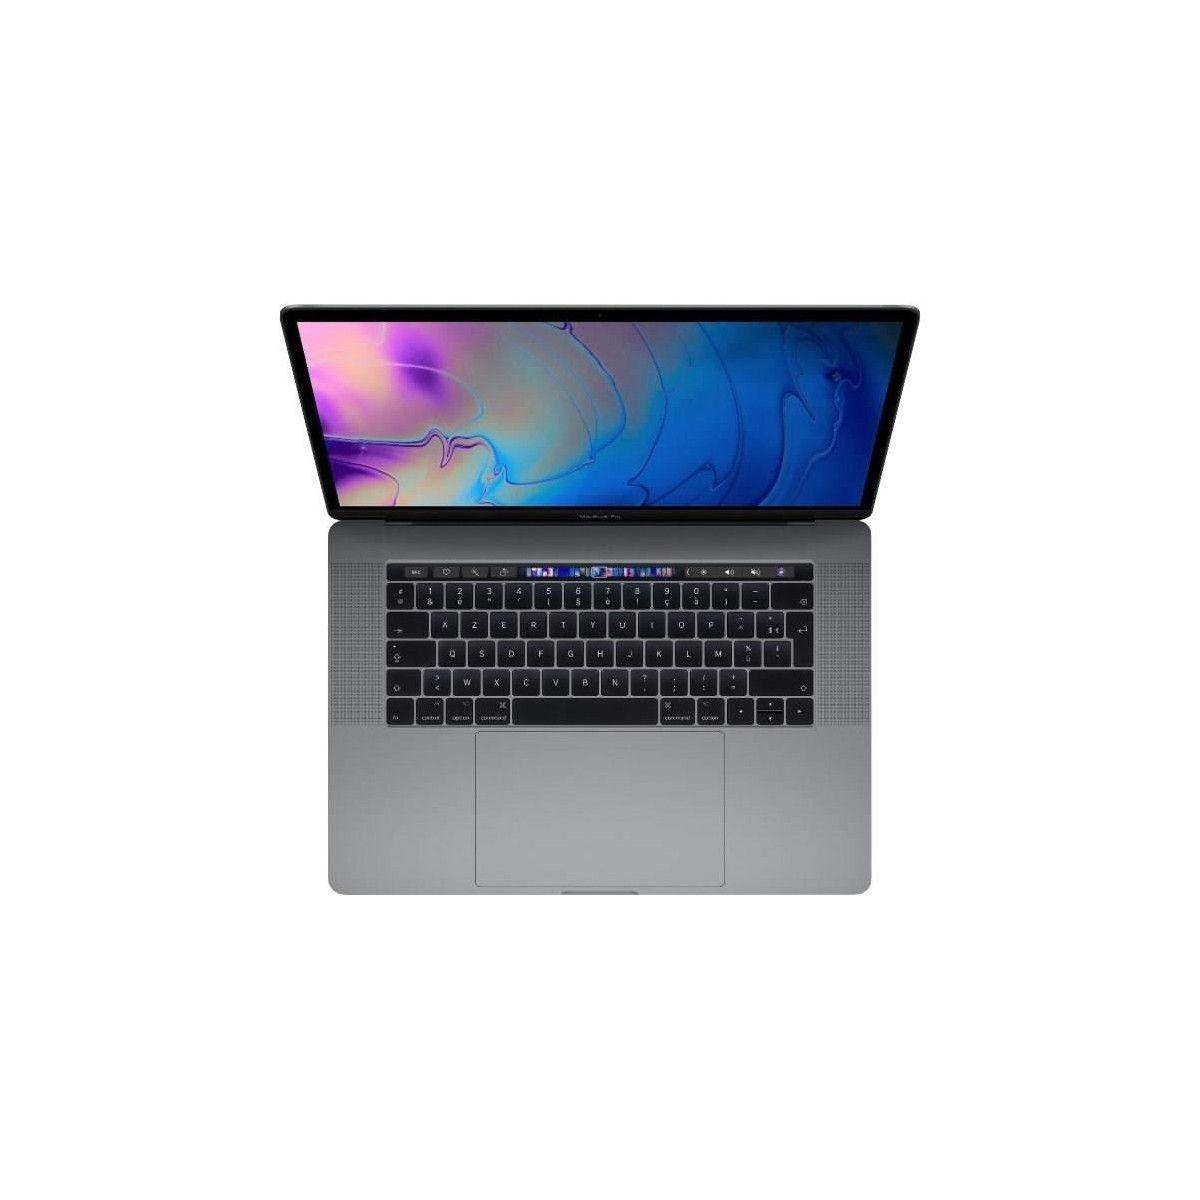 APPLE MacBook Pro MR942FN/A - 15,4 pouces Retina avec Touch Bar - Intel Core i7 - RAM 16Go - Stockage 512Go - Gris Sideral